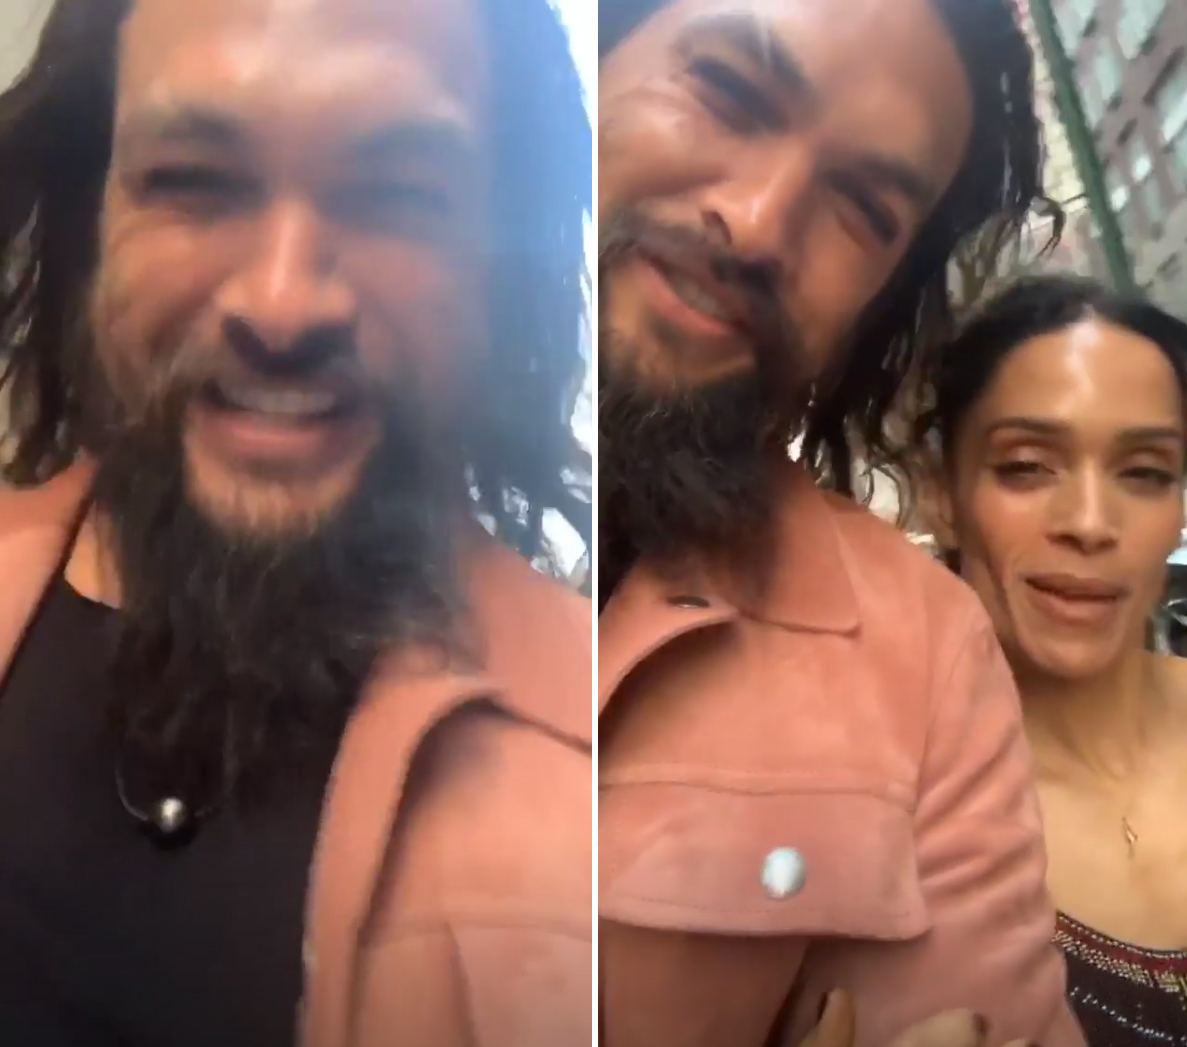 """Jason-Momoa-Lisa-Bonet-game-of-thrones-instagram - Momoa and Bonet attended the NYC premiere of Game of Thrones ' final season and the Aquaman star could not get over his wife's appearance. """"You look gorgeous,"""" he said told the Cosby Show alum on his Instagram Story while the pair walked into the event."""